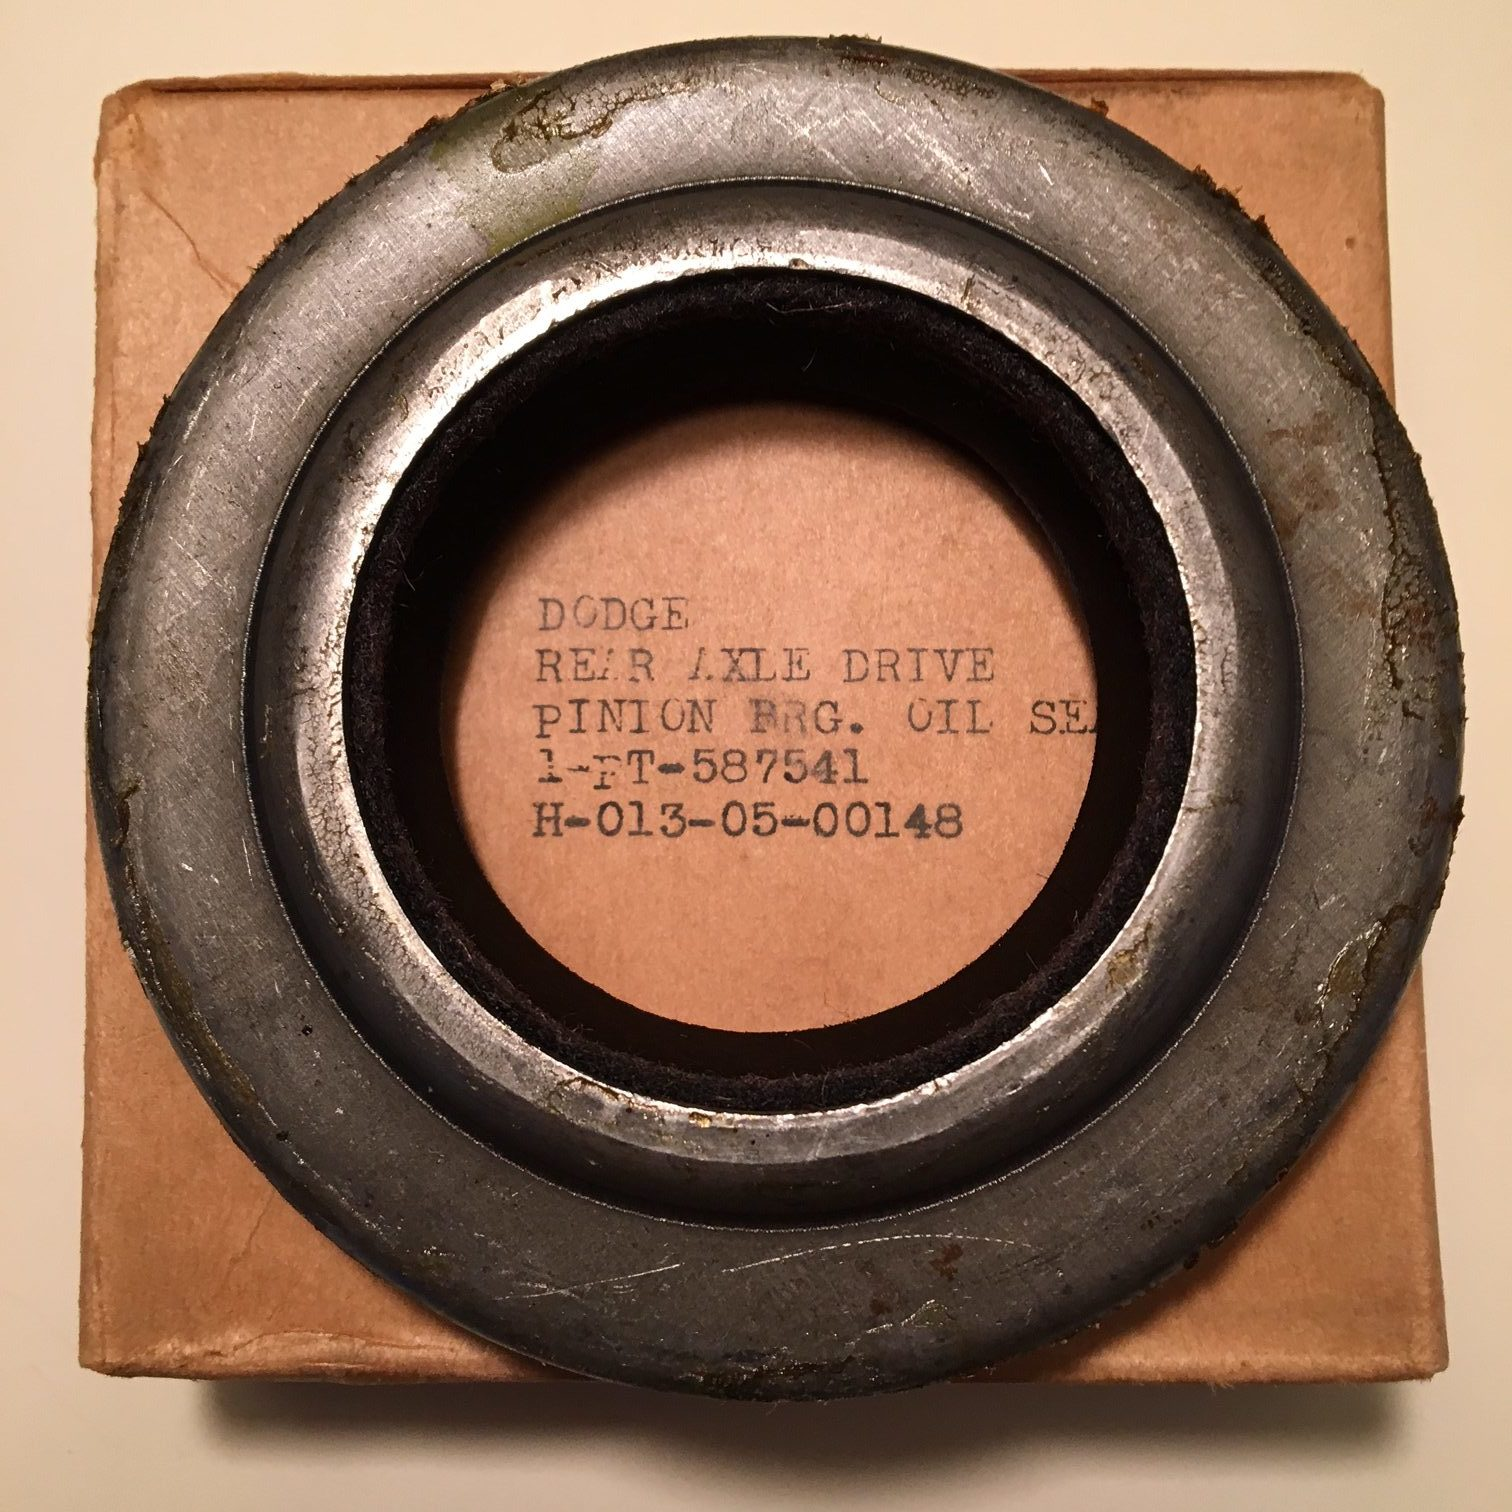 1.5 Ton Dodge Truck Rear Differential Pinion Seal – NOS